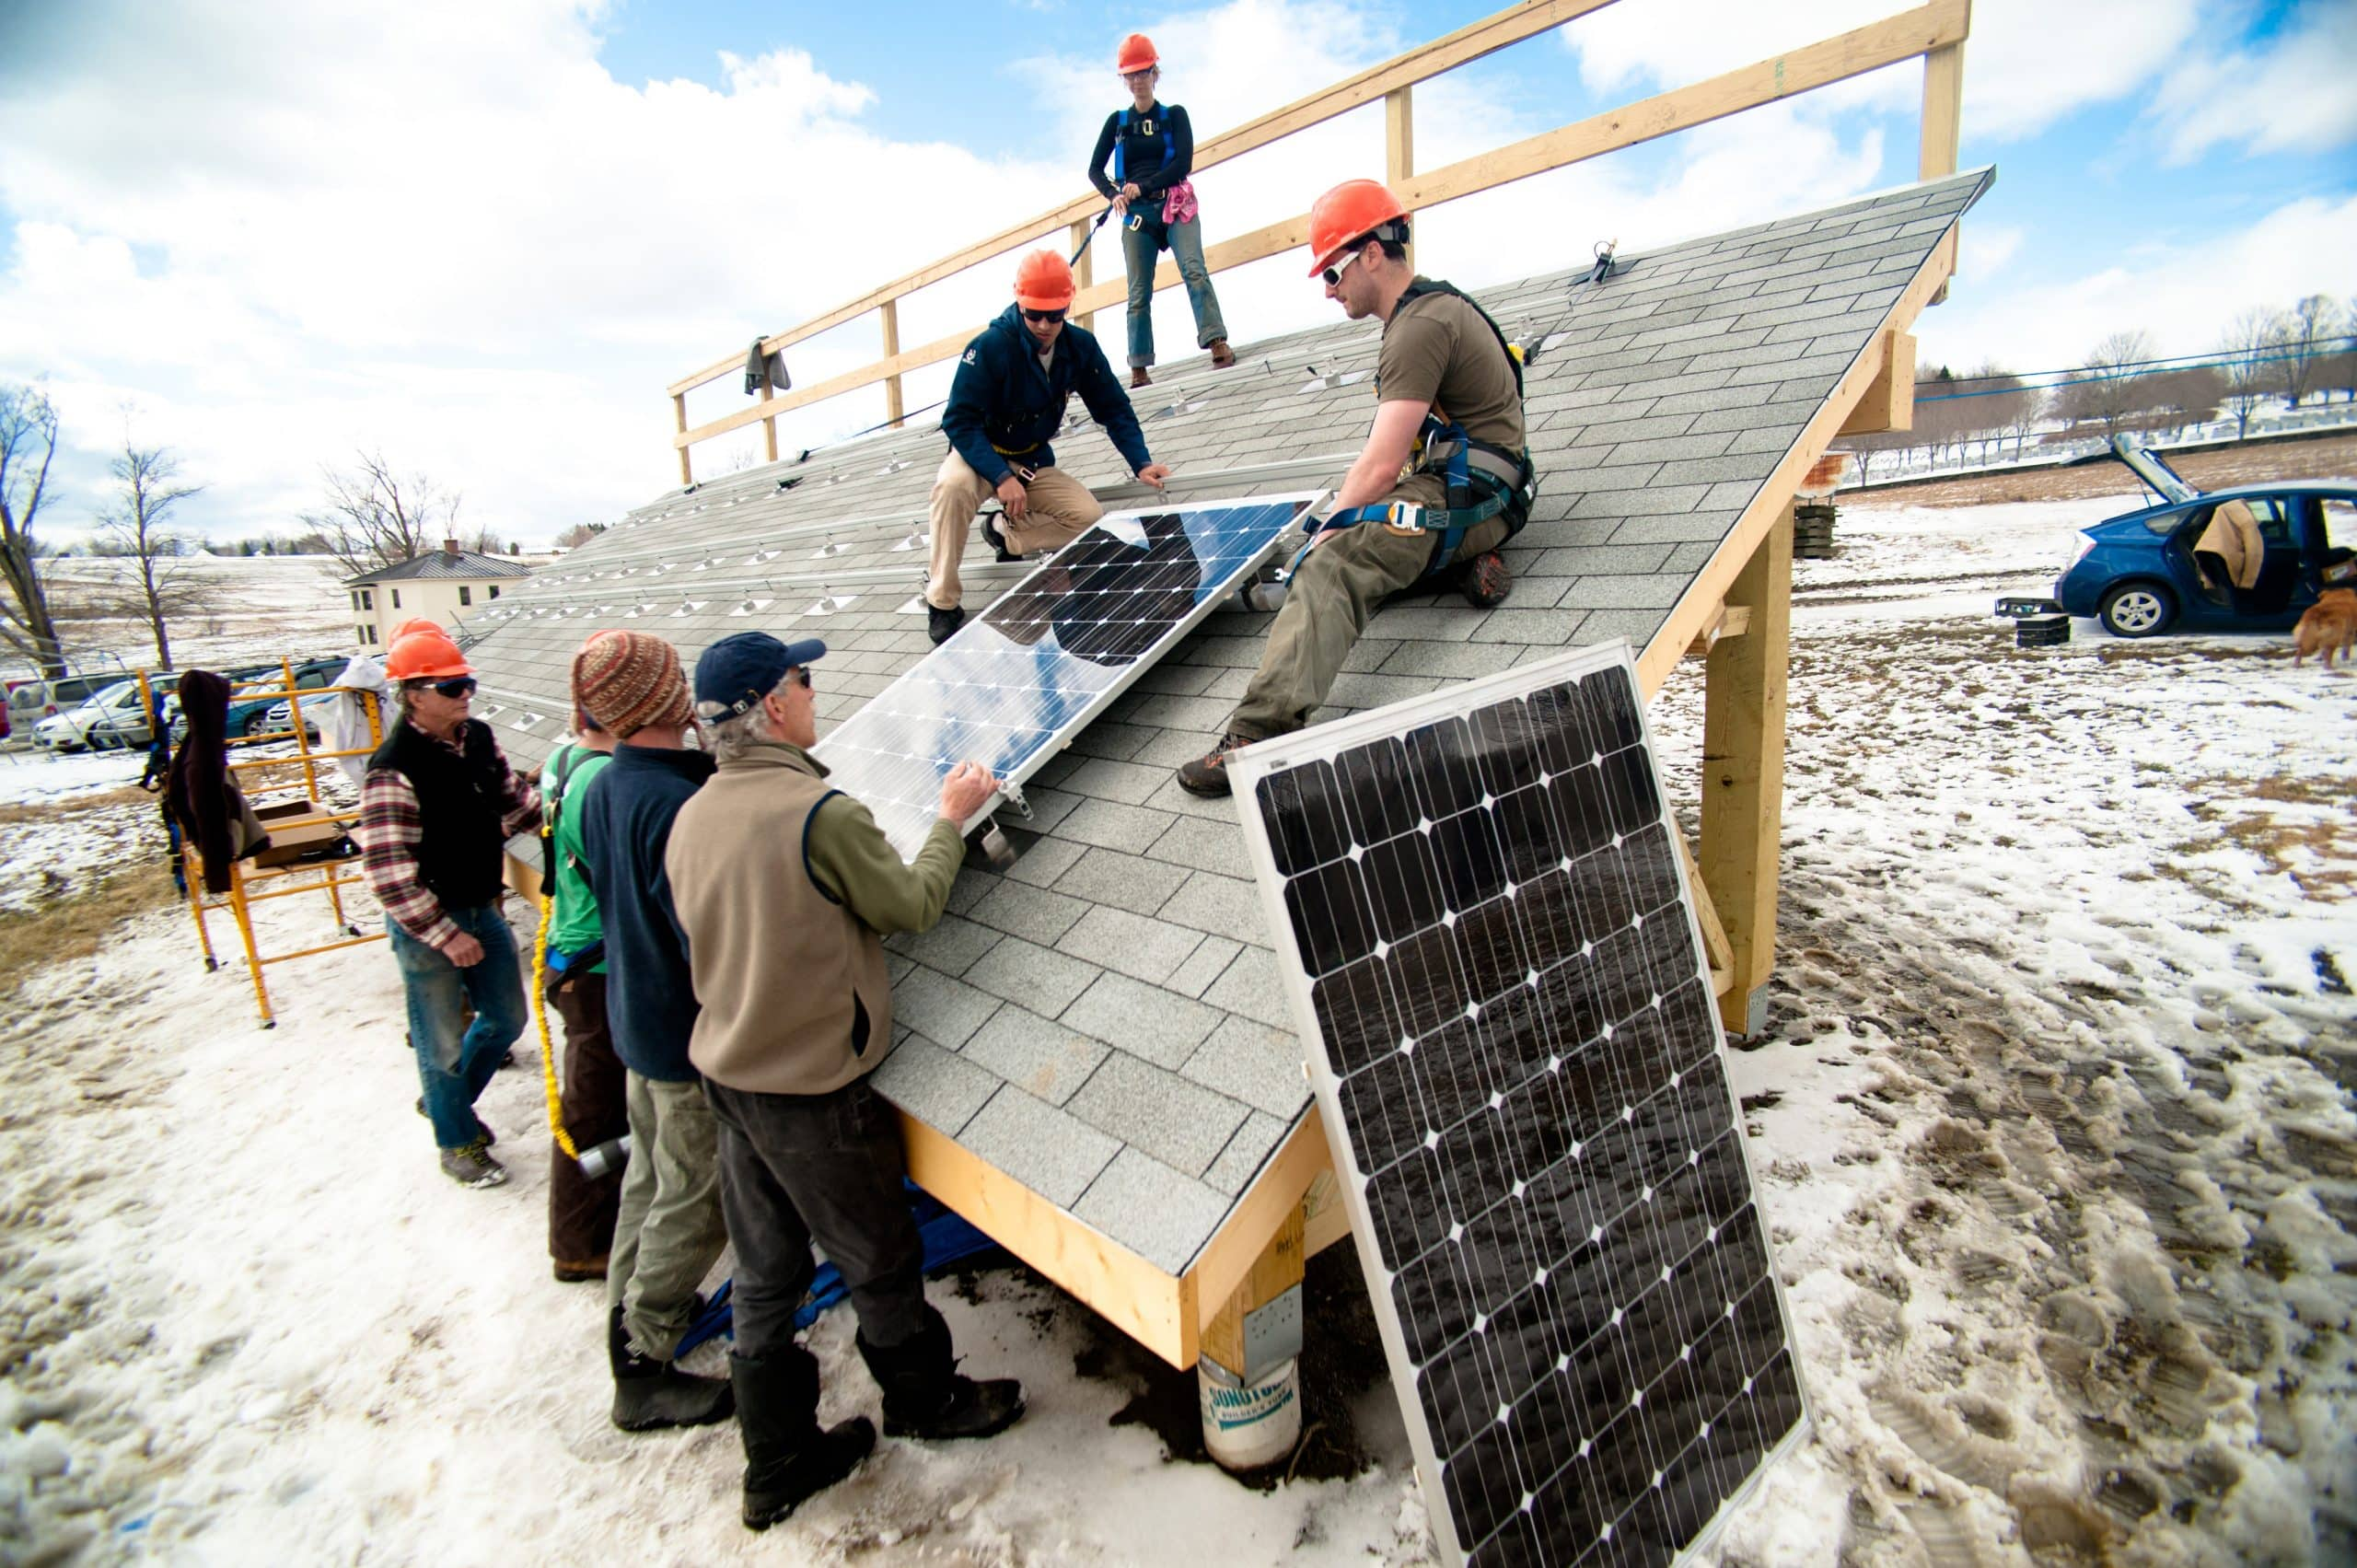 Students learning how to install a solar panel, Randolph Center campus